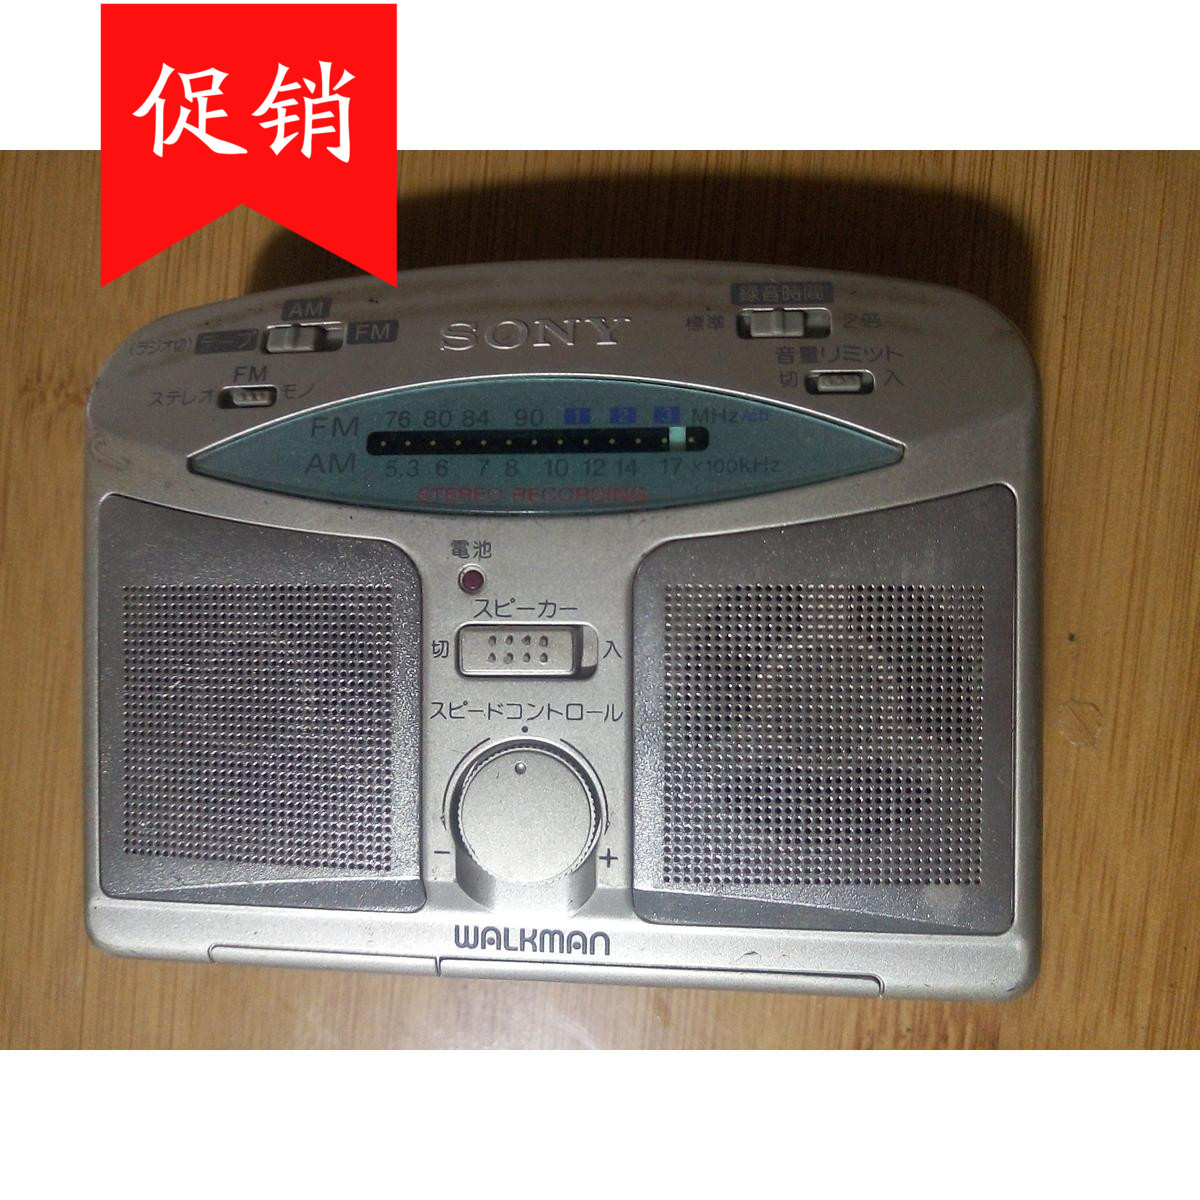 [The goods stop production and no stock][Secondhand products]Sony Advanced WM-GX322 Cassette Walkman FM Stereo High Fidelity Voice